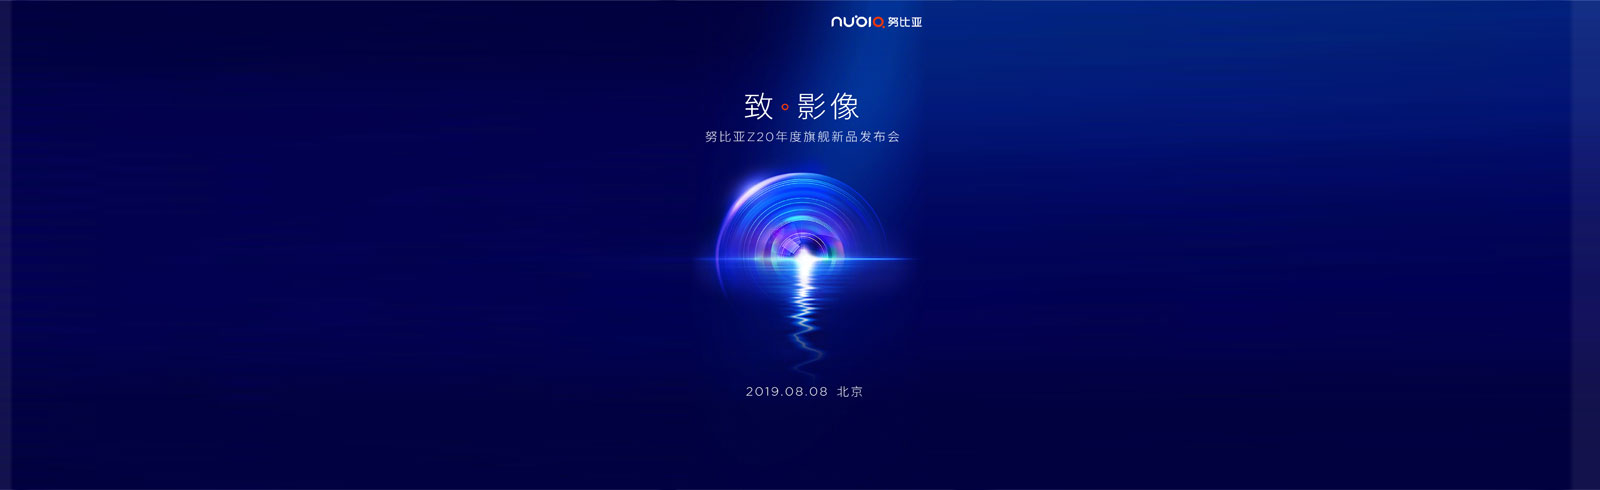 nubia will unveil the nubia Z20 on August 8